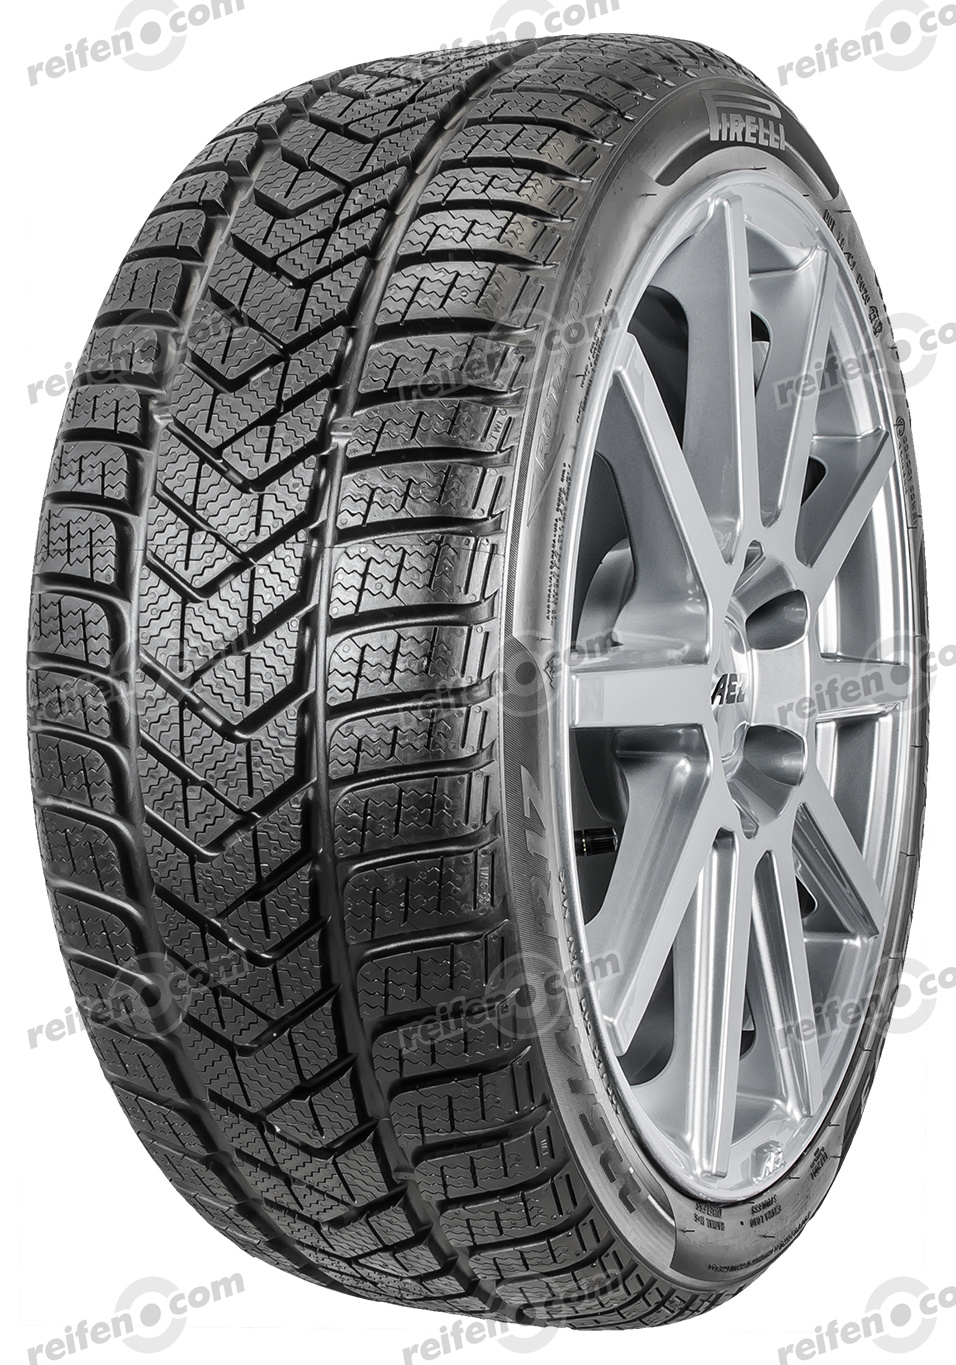 245/40 R18 97V Winter Sottozero 3 XL  Winter Sottozero 3 XL